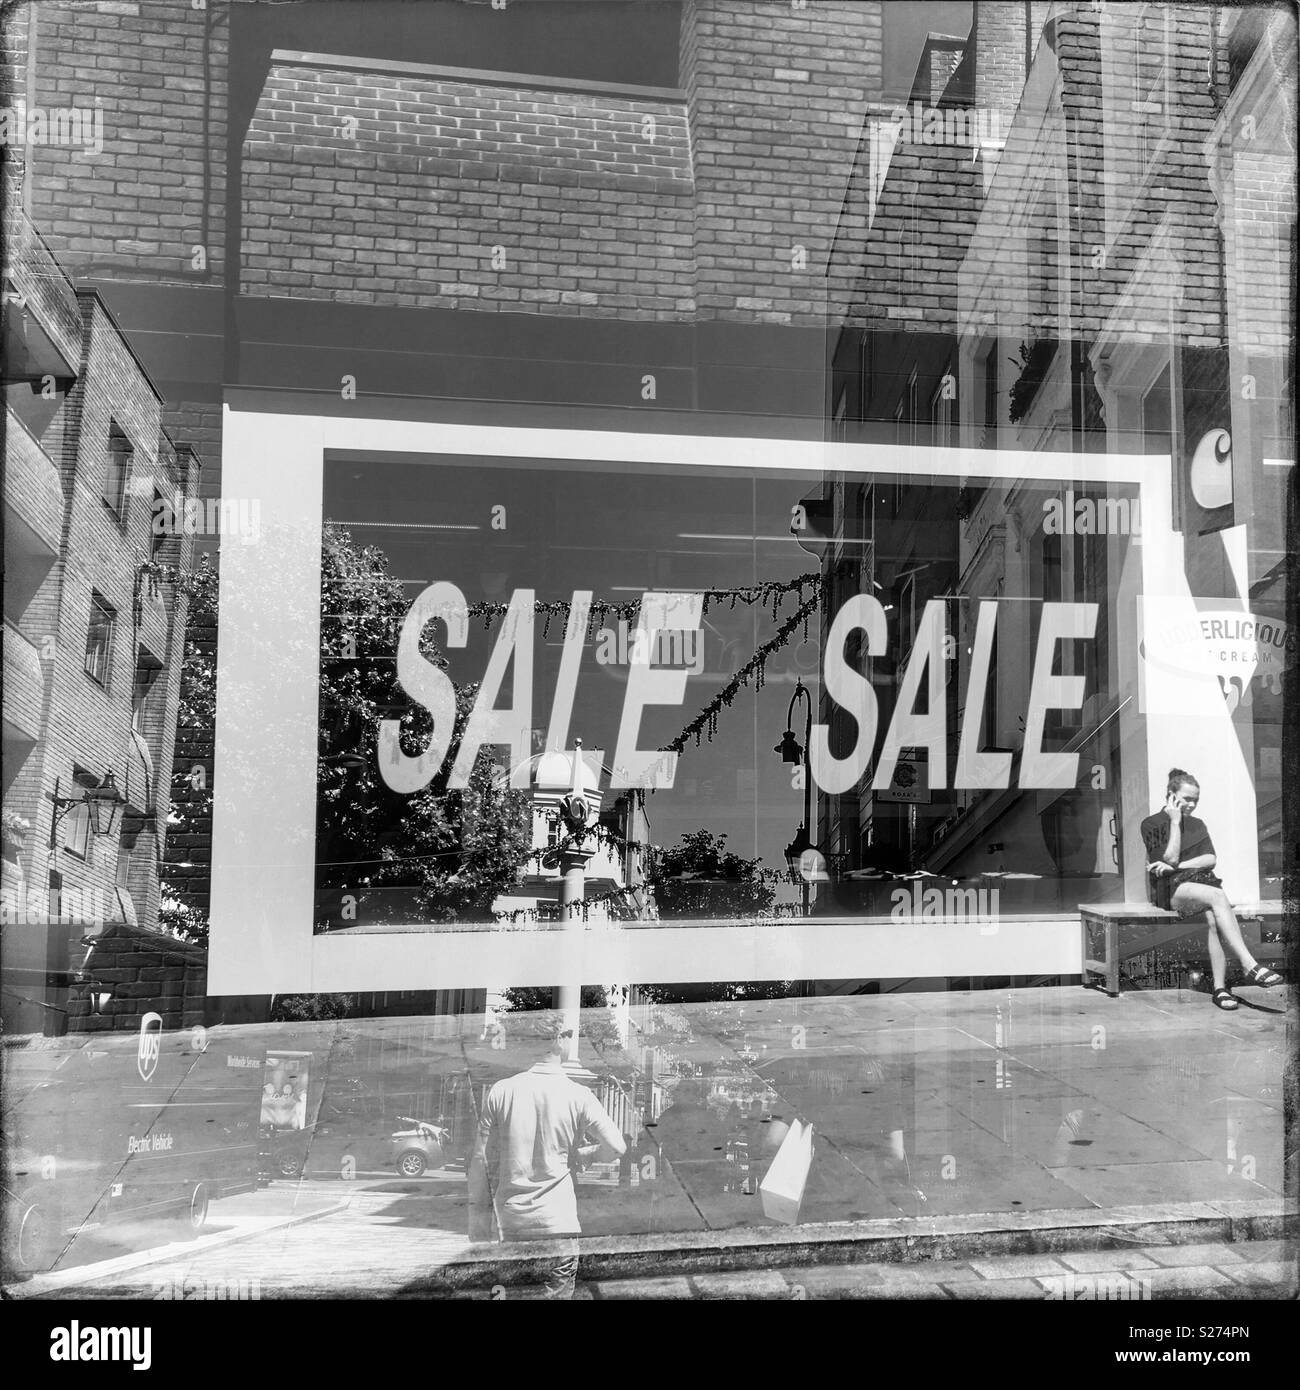 Double exposure, sale sign - Stock Image